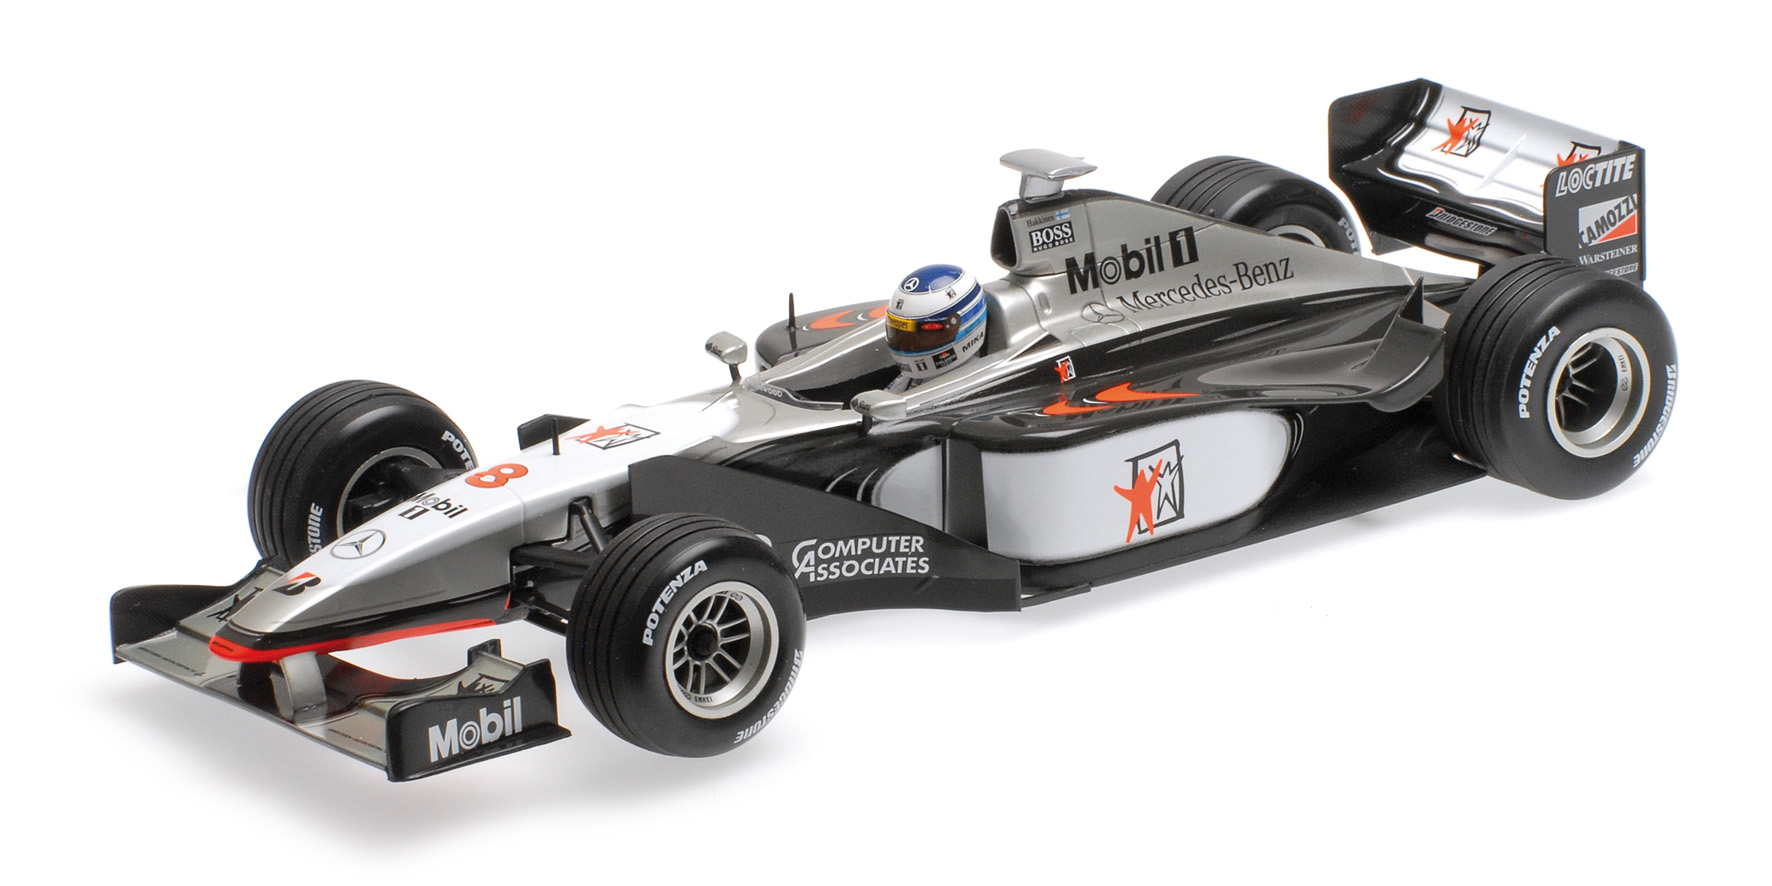 McLAREN MERCEDES MP4/13 MIKA HAKKINEN WORLD CHAMPION FORMULA 1 1998 Minichamps